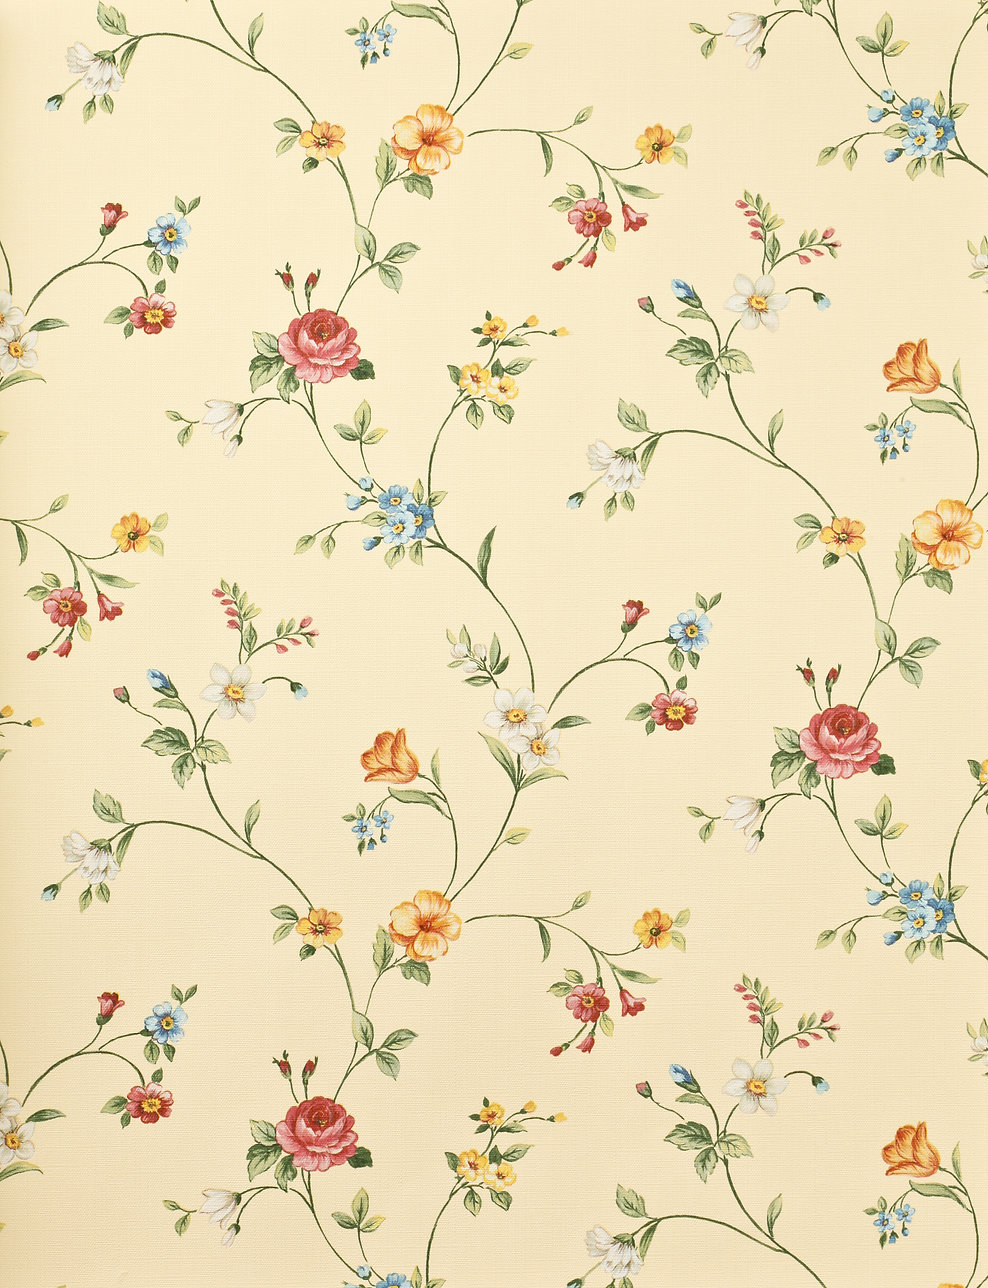 Retro floral background.jpg